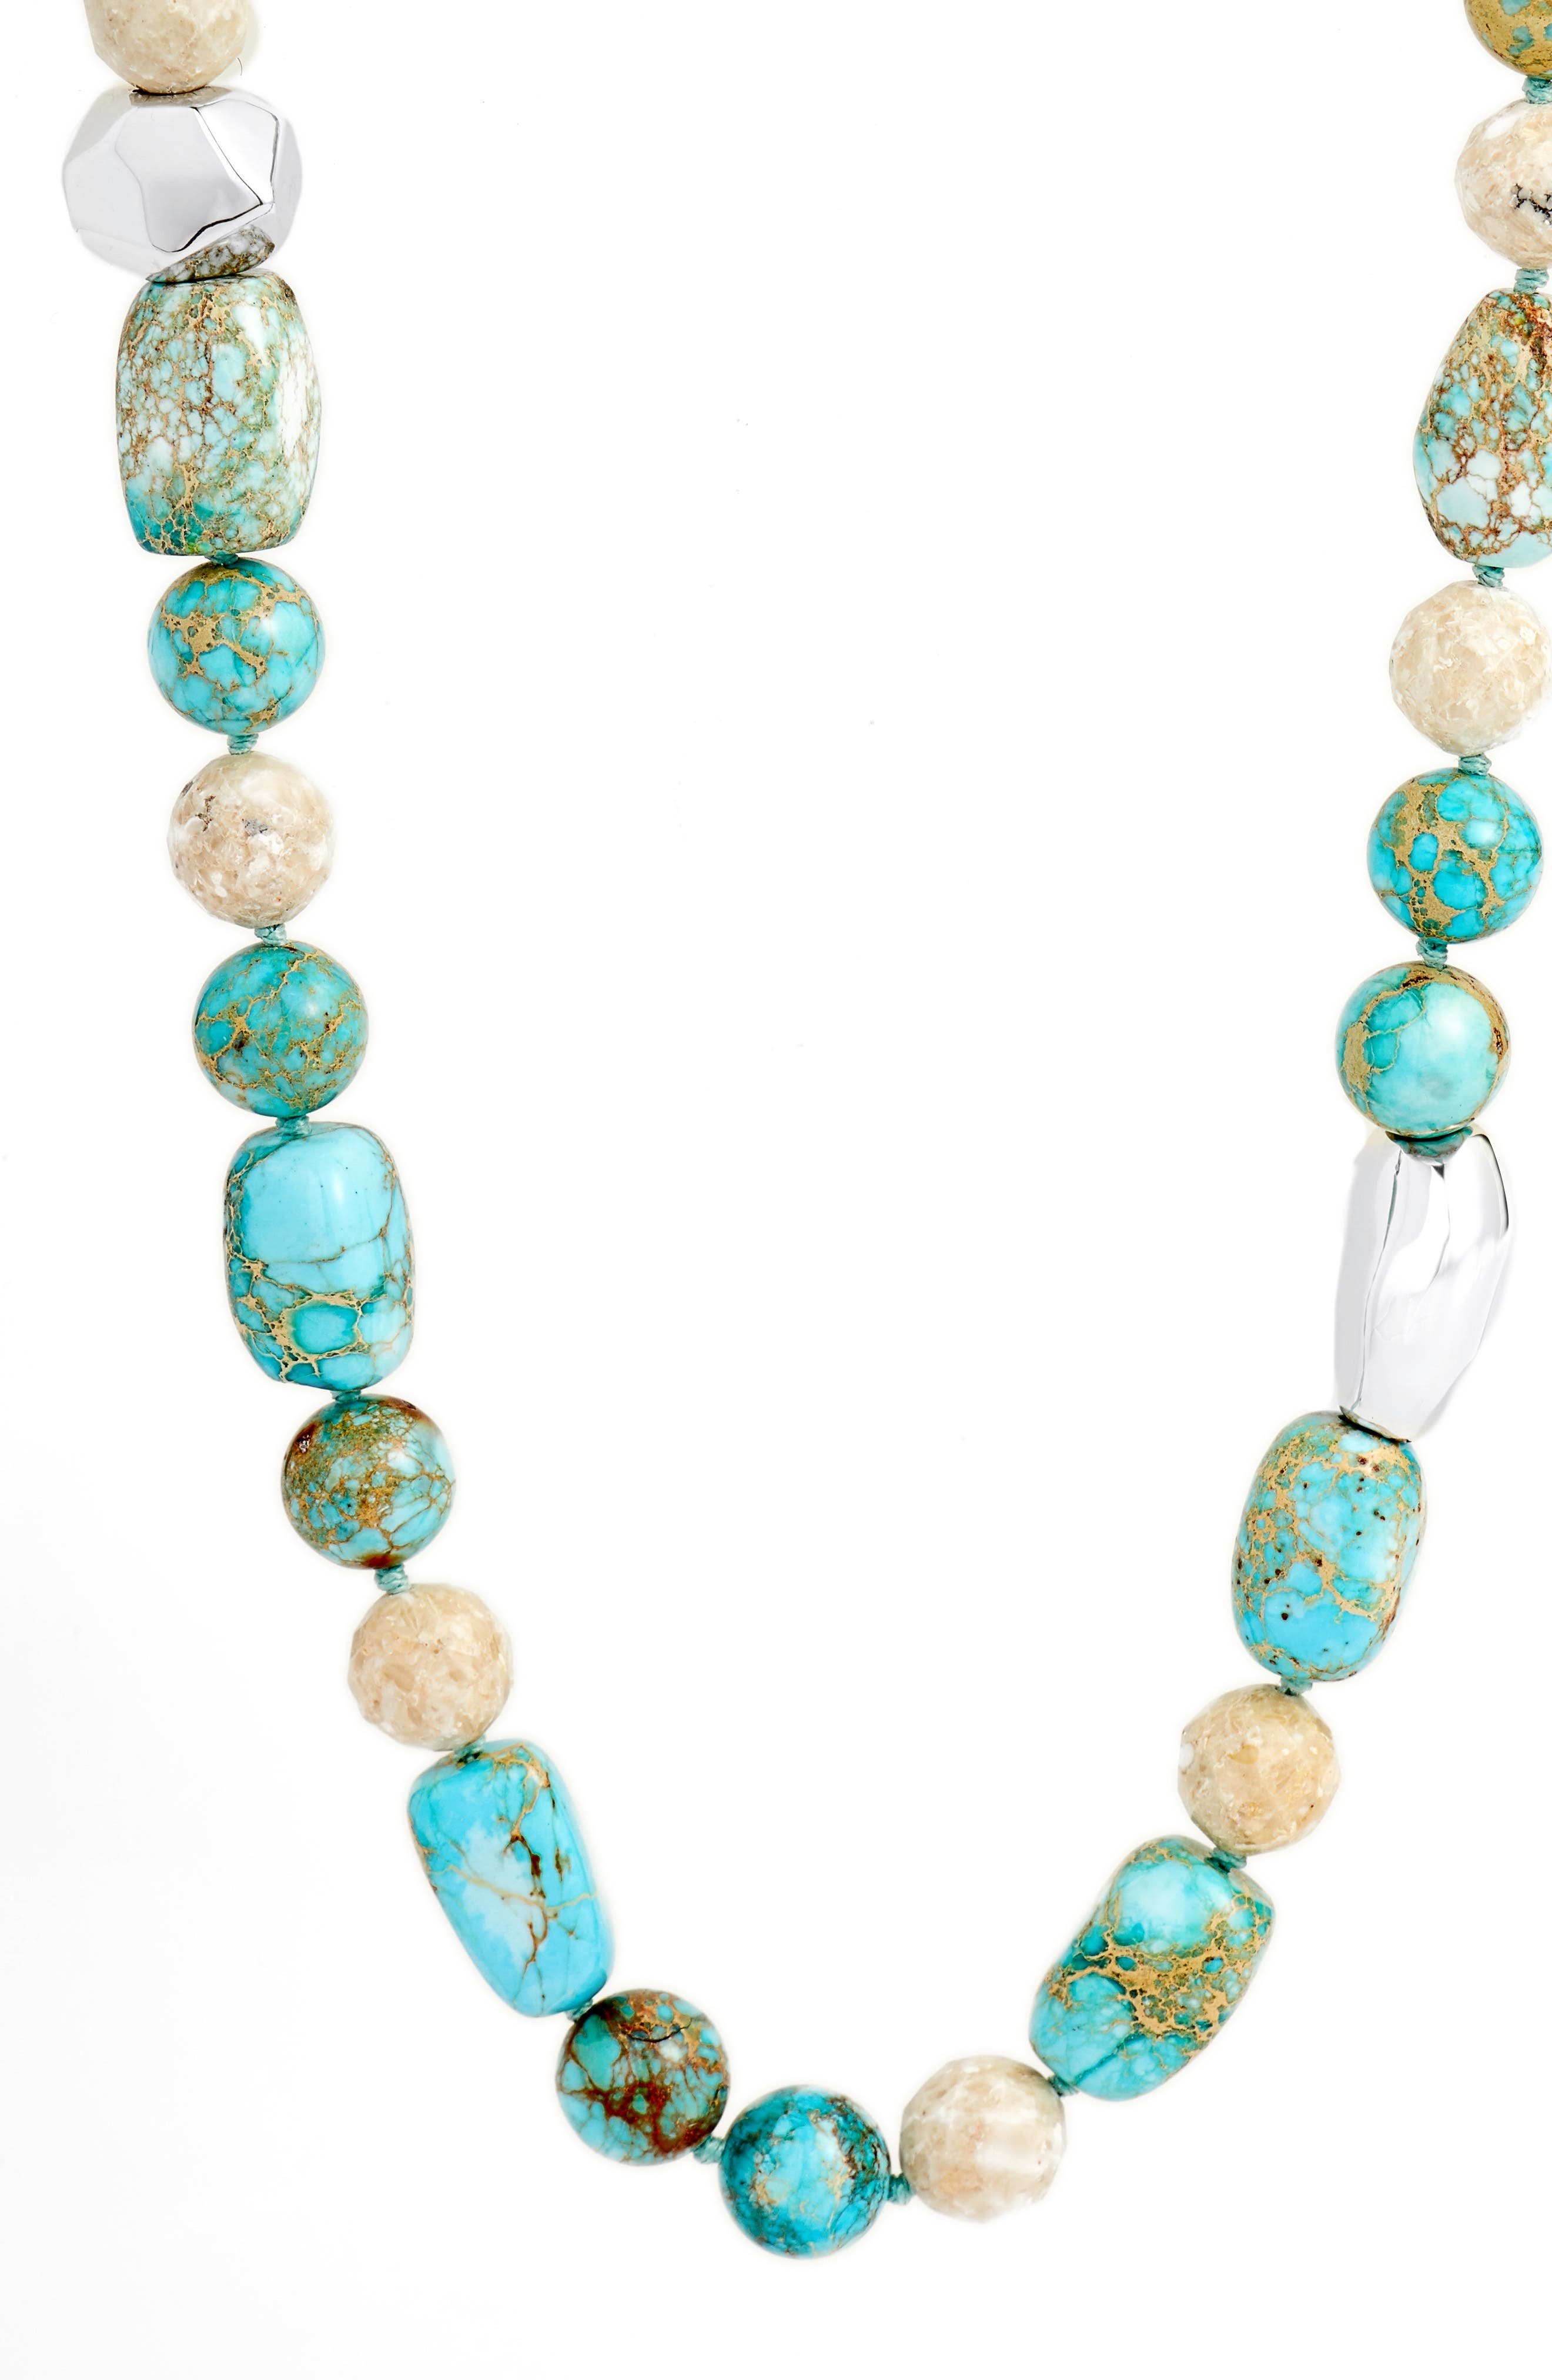 Silver Accent Jasper Beaded Necklace,                             Alternate thumbnail 2, color,                             BLUE/ BEIGE/ SILVER